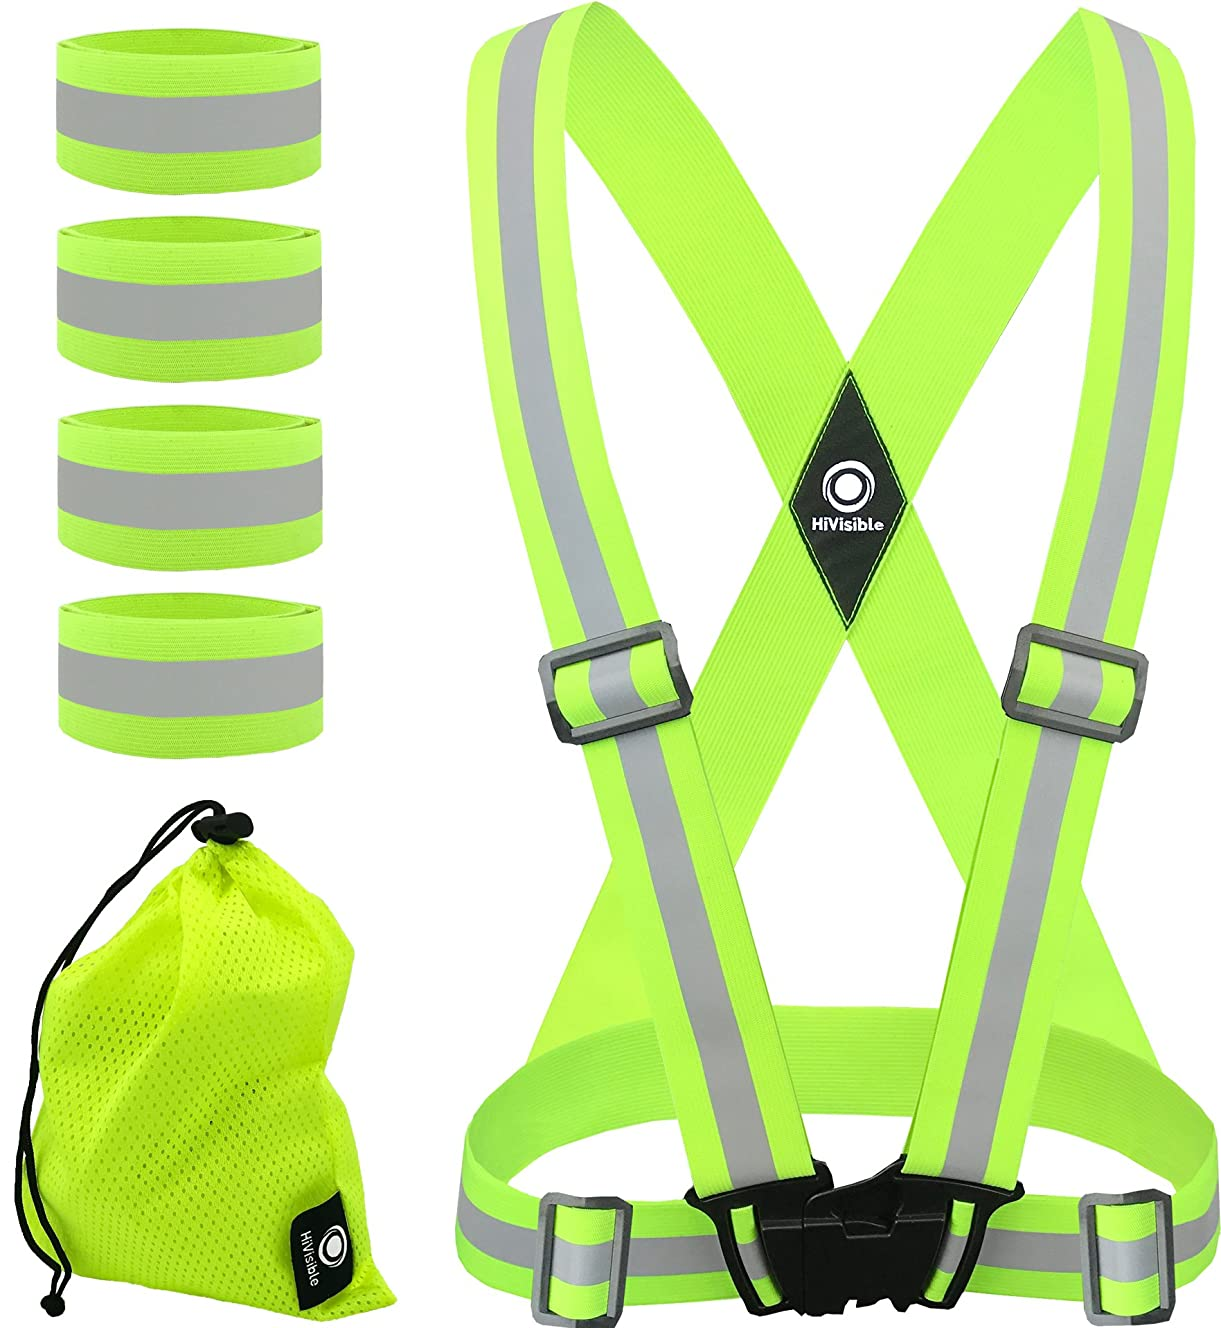 HiVisible Reflective Vest + 4 Reflective Bands - Reflective Running Gear for Men and Women for Night Running, Biking, Walking. Reflective Running Vest, Safety Straps, Reflector Strips